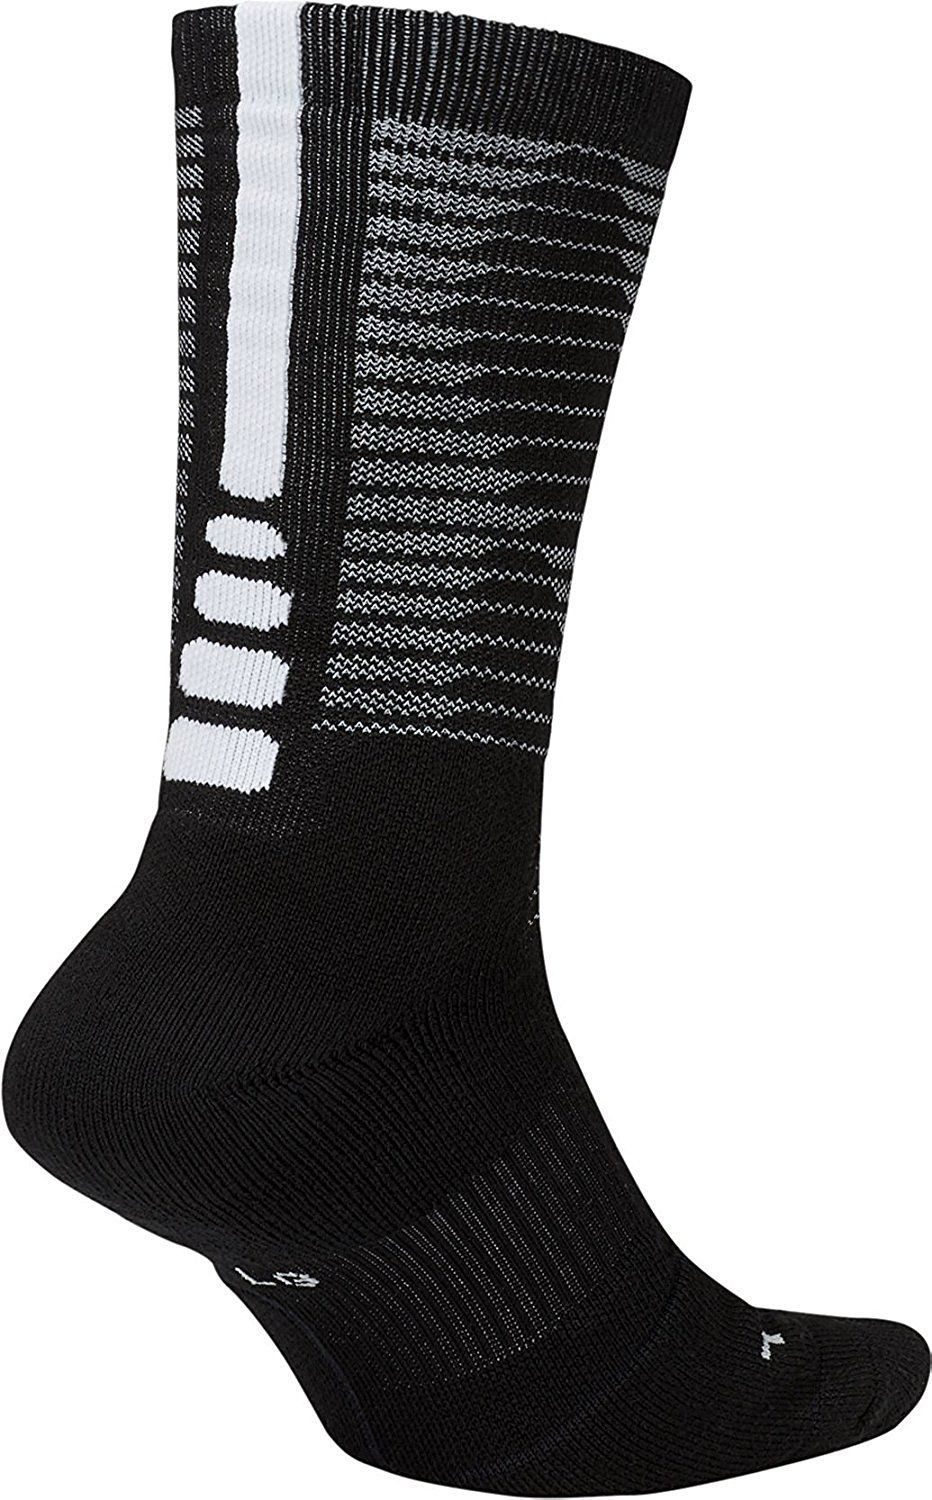 Nike MEN'S  Dri-Fit Elite Disrupter 1.5 Cushioned Crew Socks-Black  NWT image 2